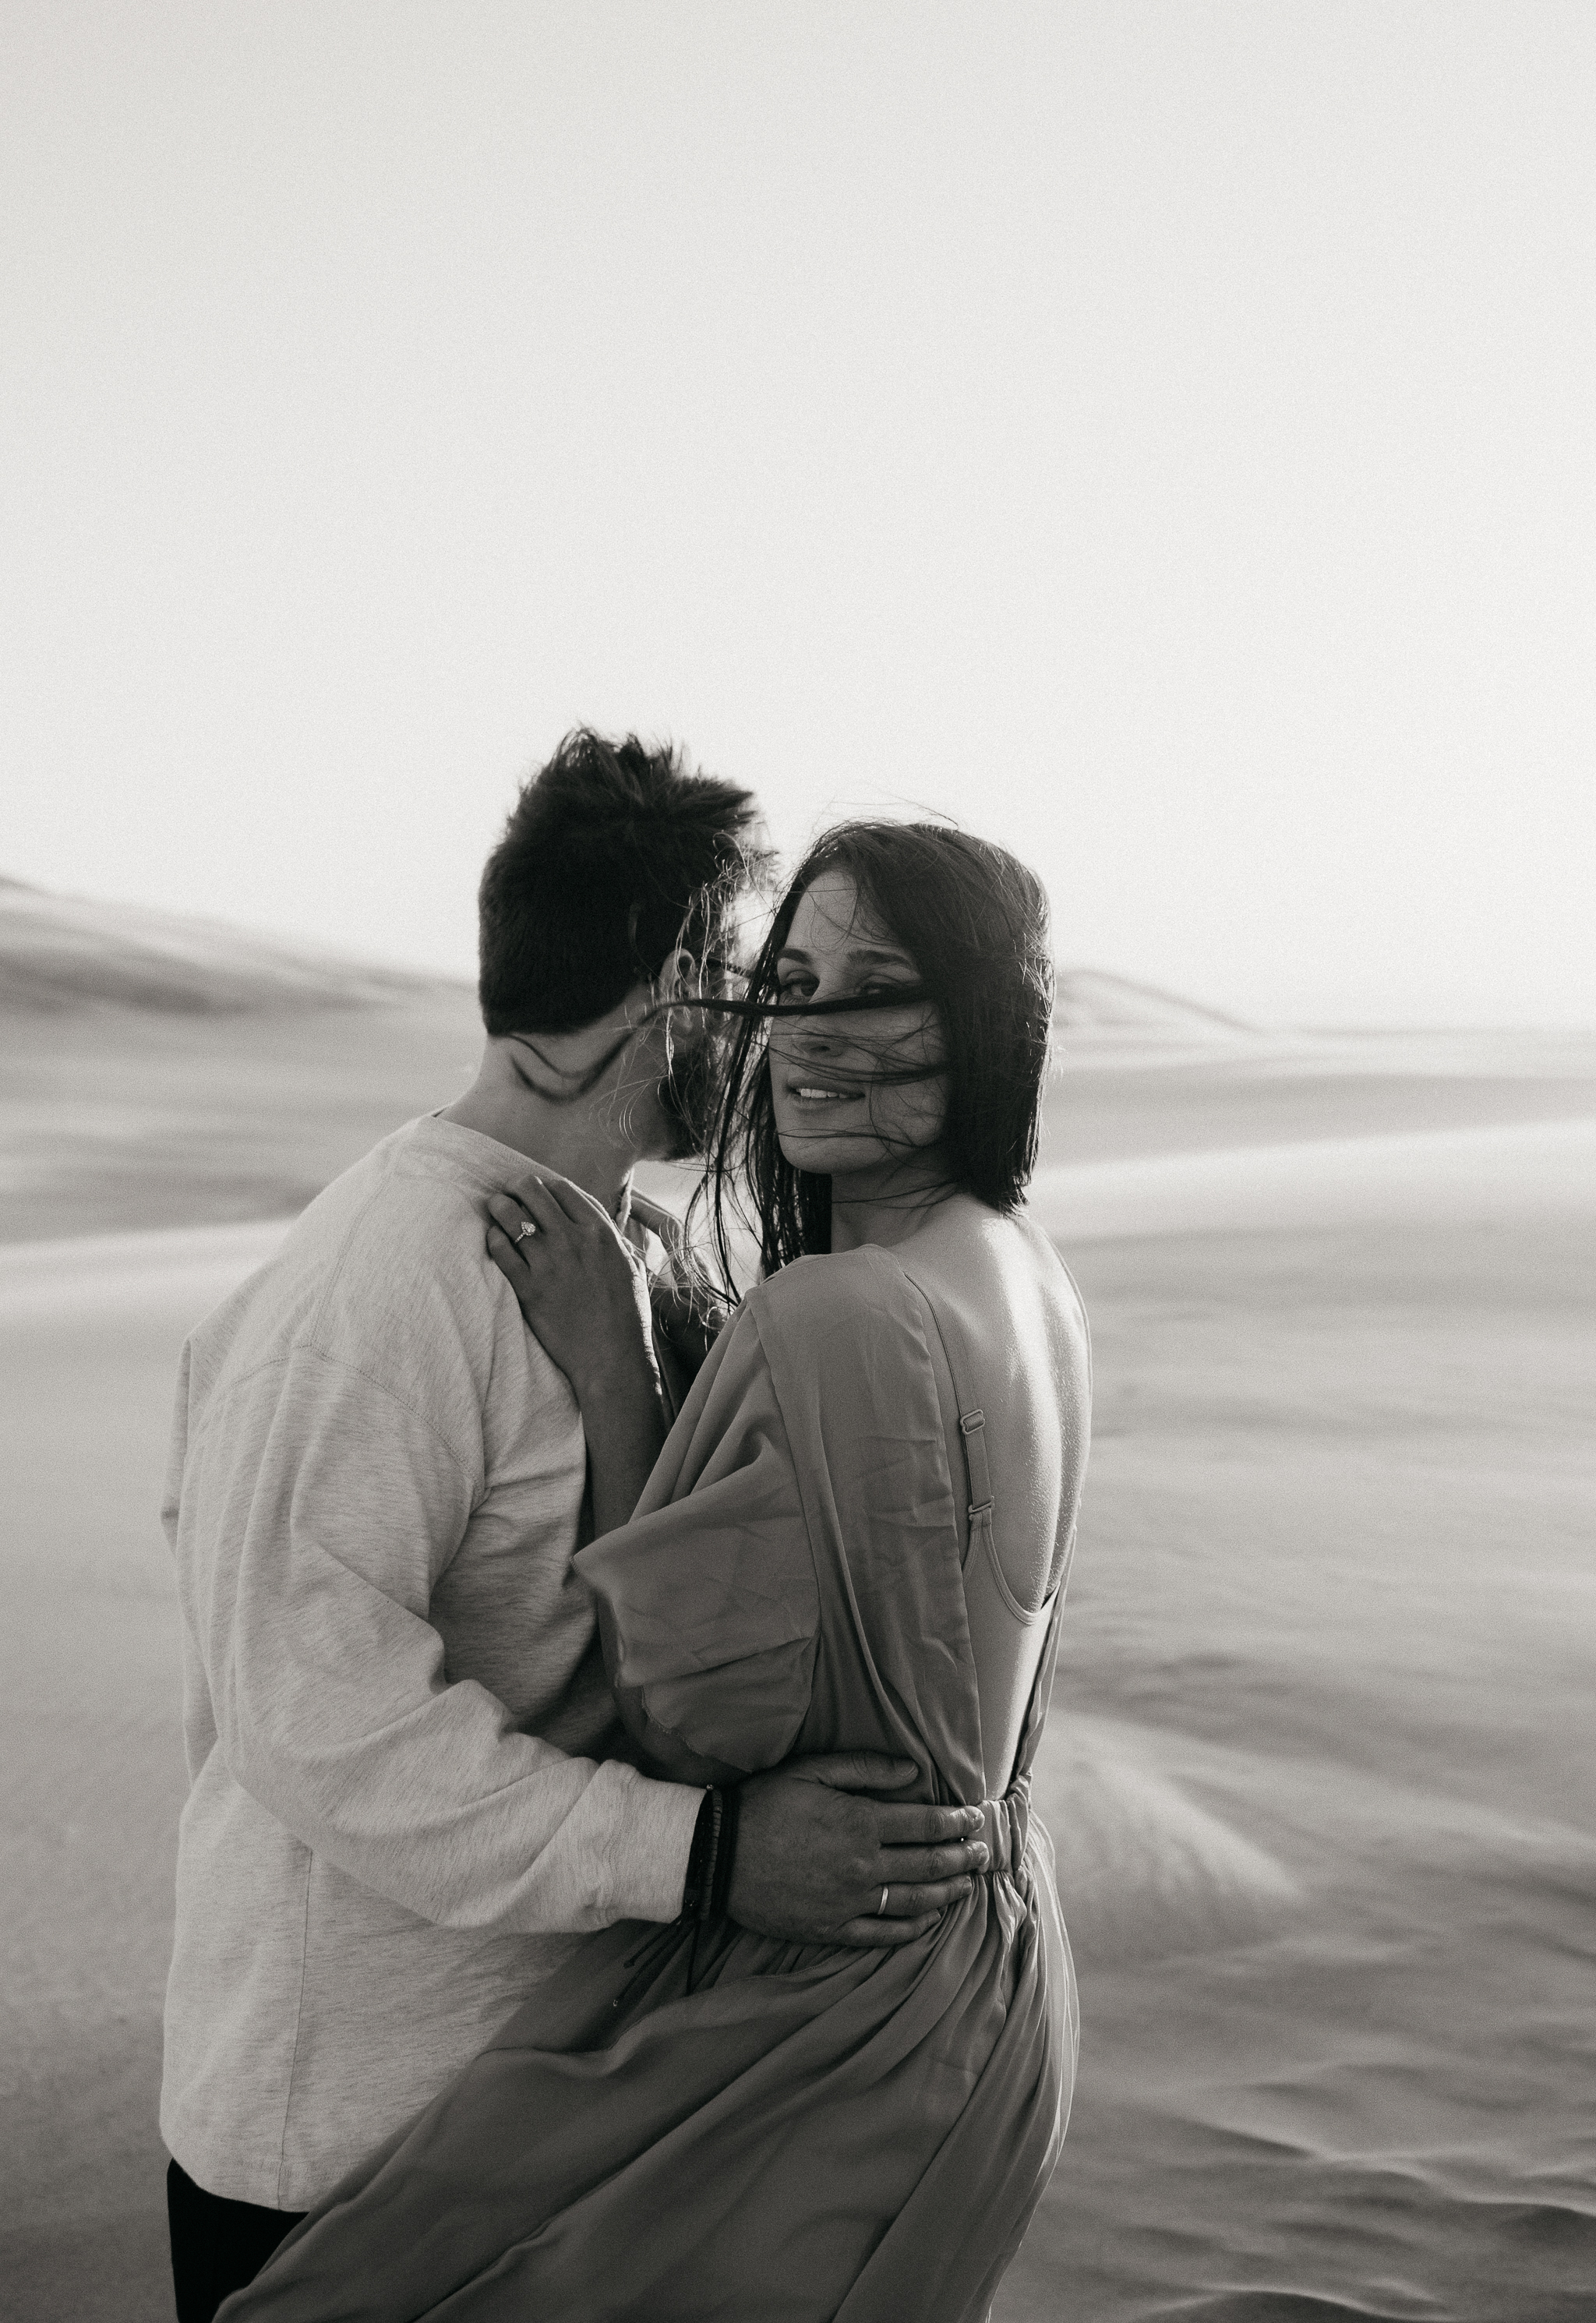 eastlyn-bright-silver-lake-sand-dunes-michigan-wedding-engagement-photographer-77.jpg